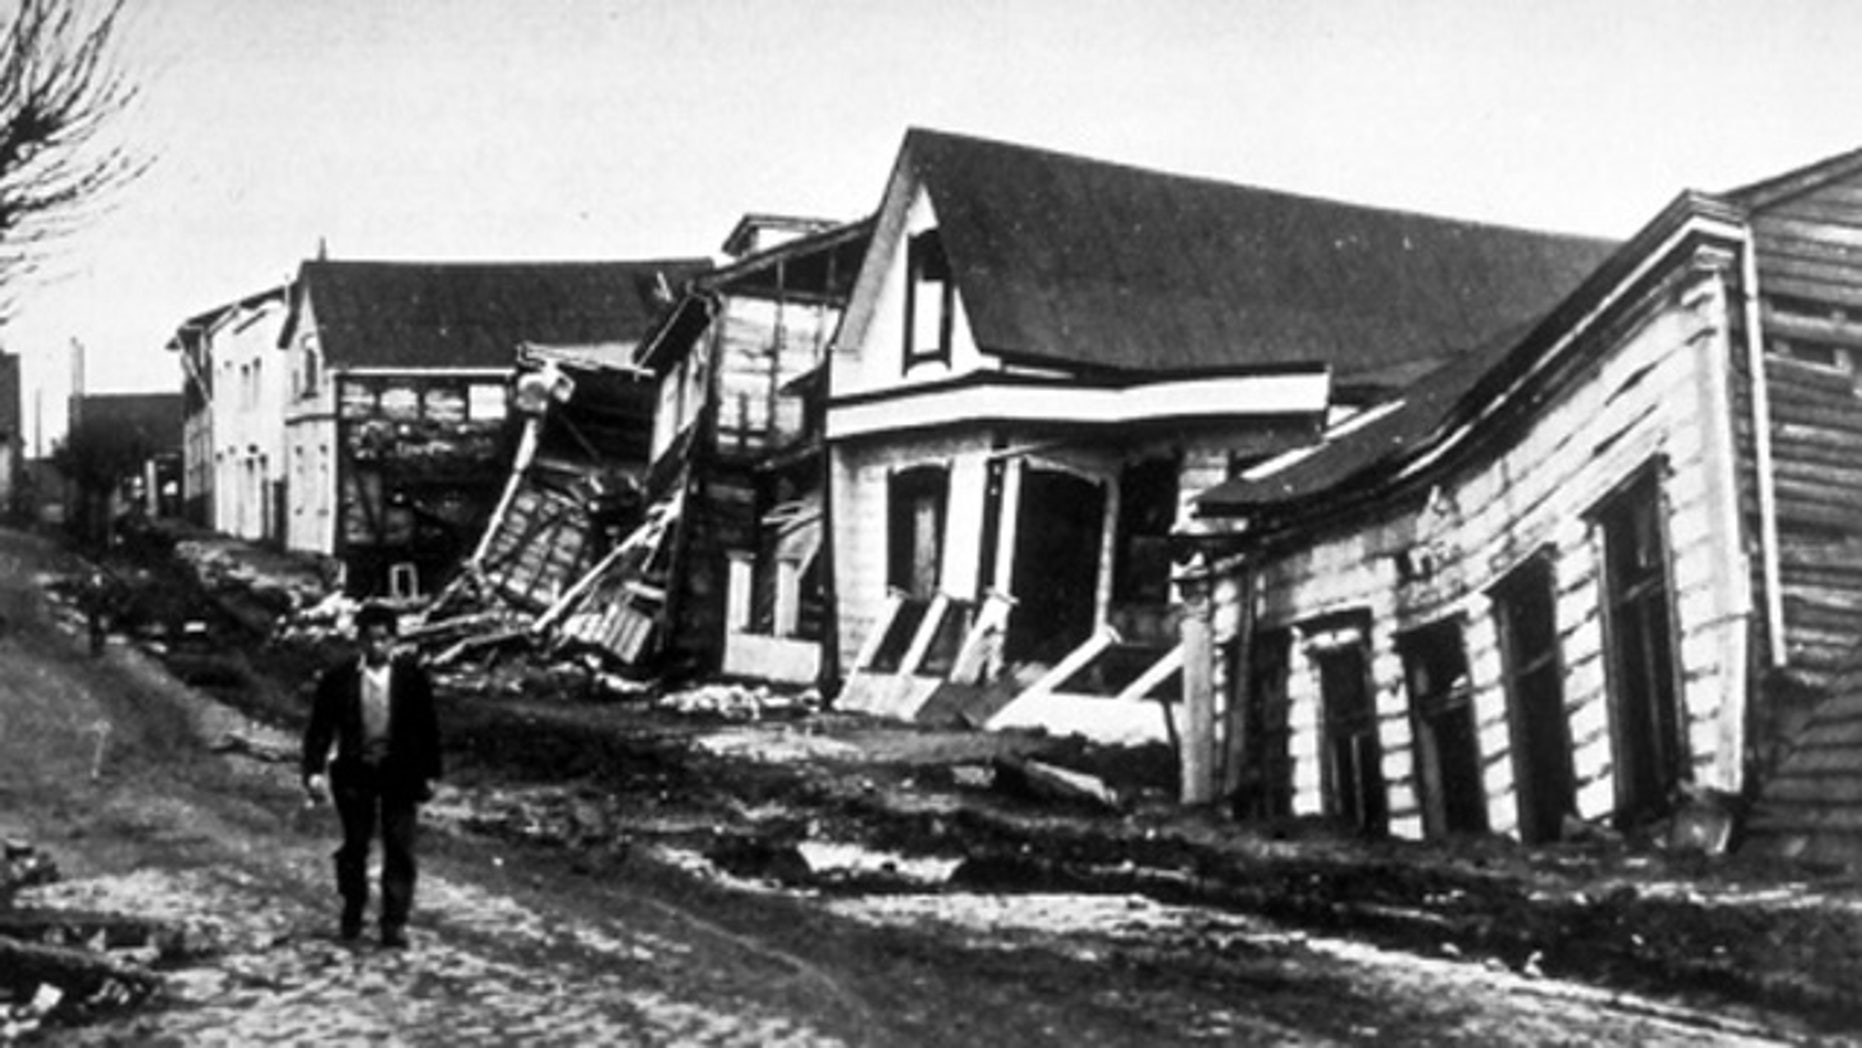 Street scene from Valdivia, Chile, after the 1960 magnitude-9.5 earthquake -- the largest ever recorded.